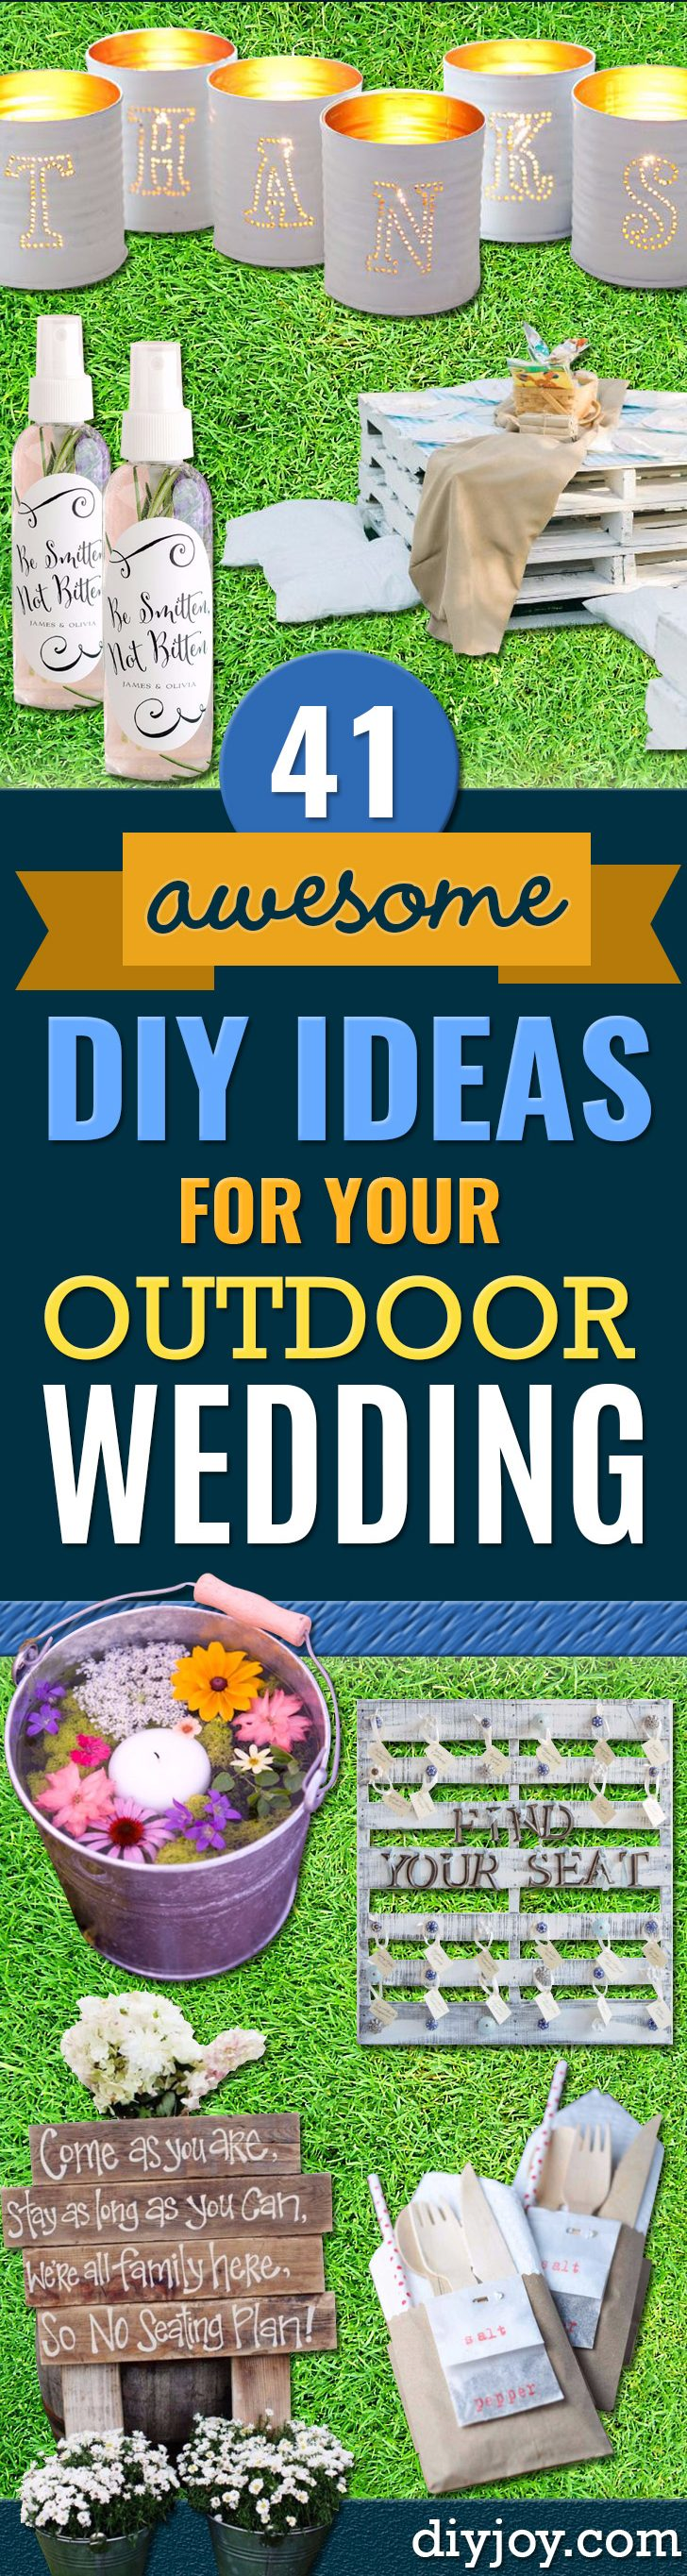 diy outdoor wedding ideas - summer wedding idea diy Lighting, Mason Jar Centerpieces, Table Decor, Party Favors, Guestbook Ideas, Signs, Flowers